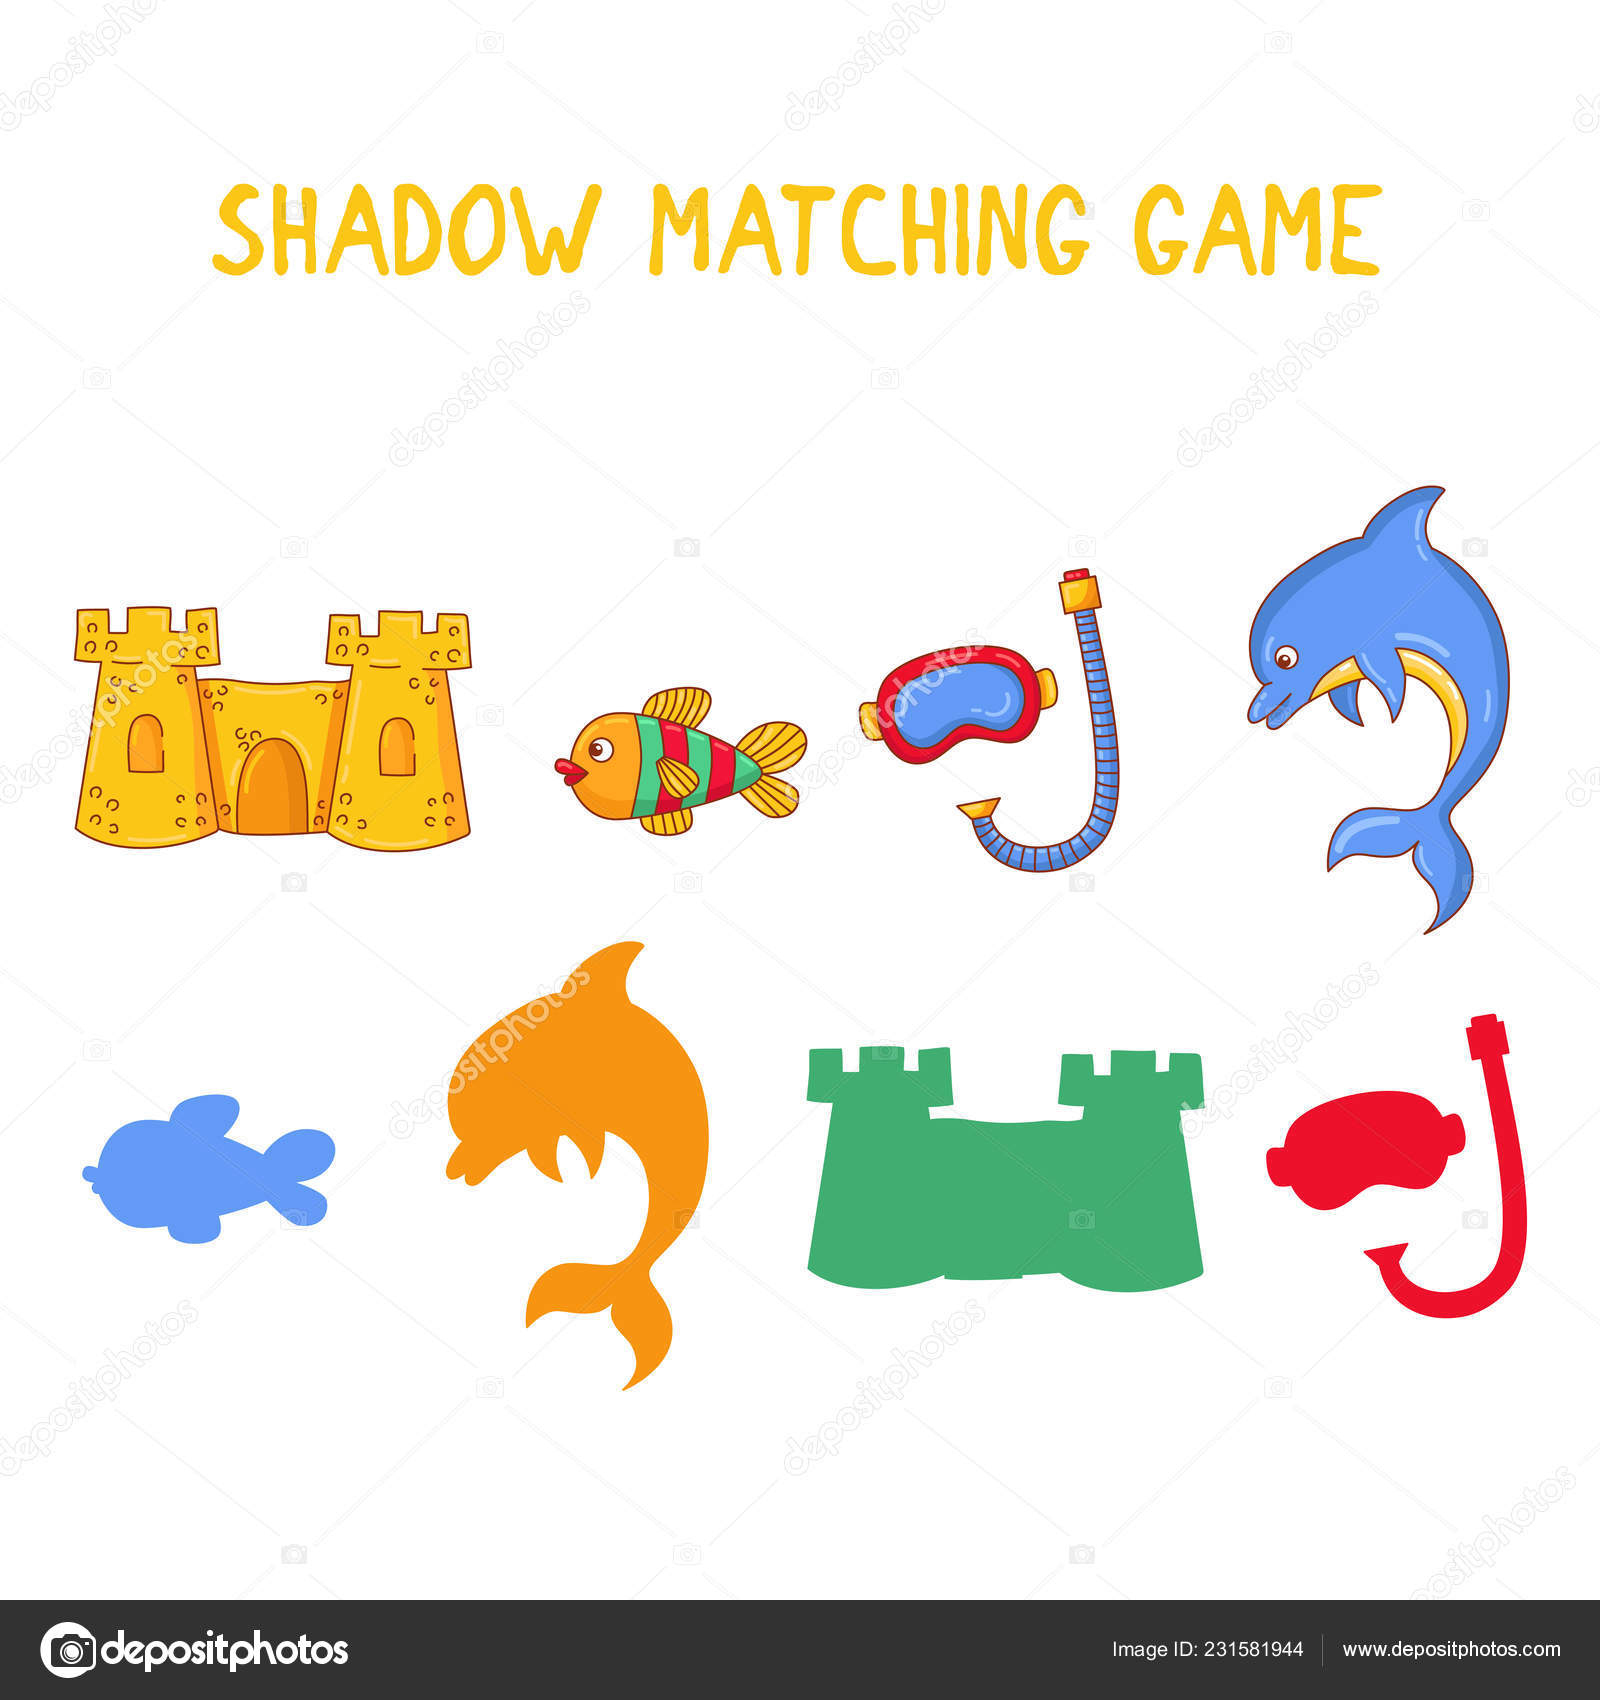 Summer Shadows Matching Game For Kids Vector Quiz — Stock à Quiz Des Ombres